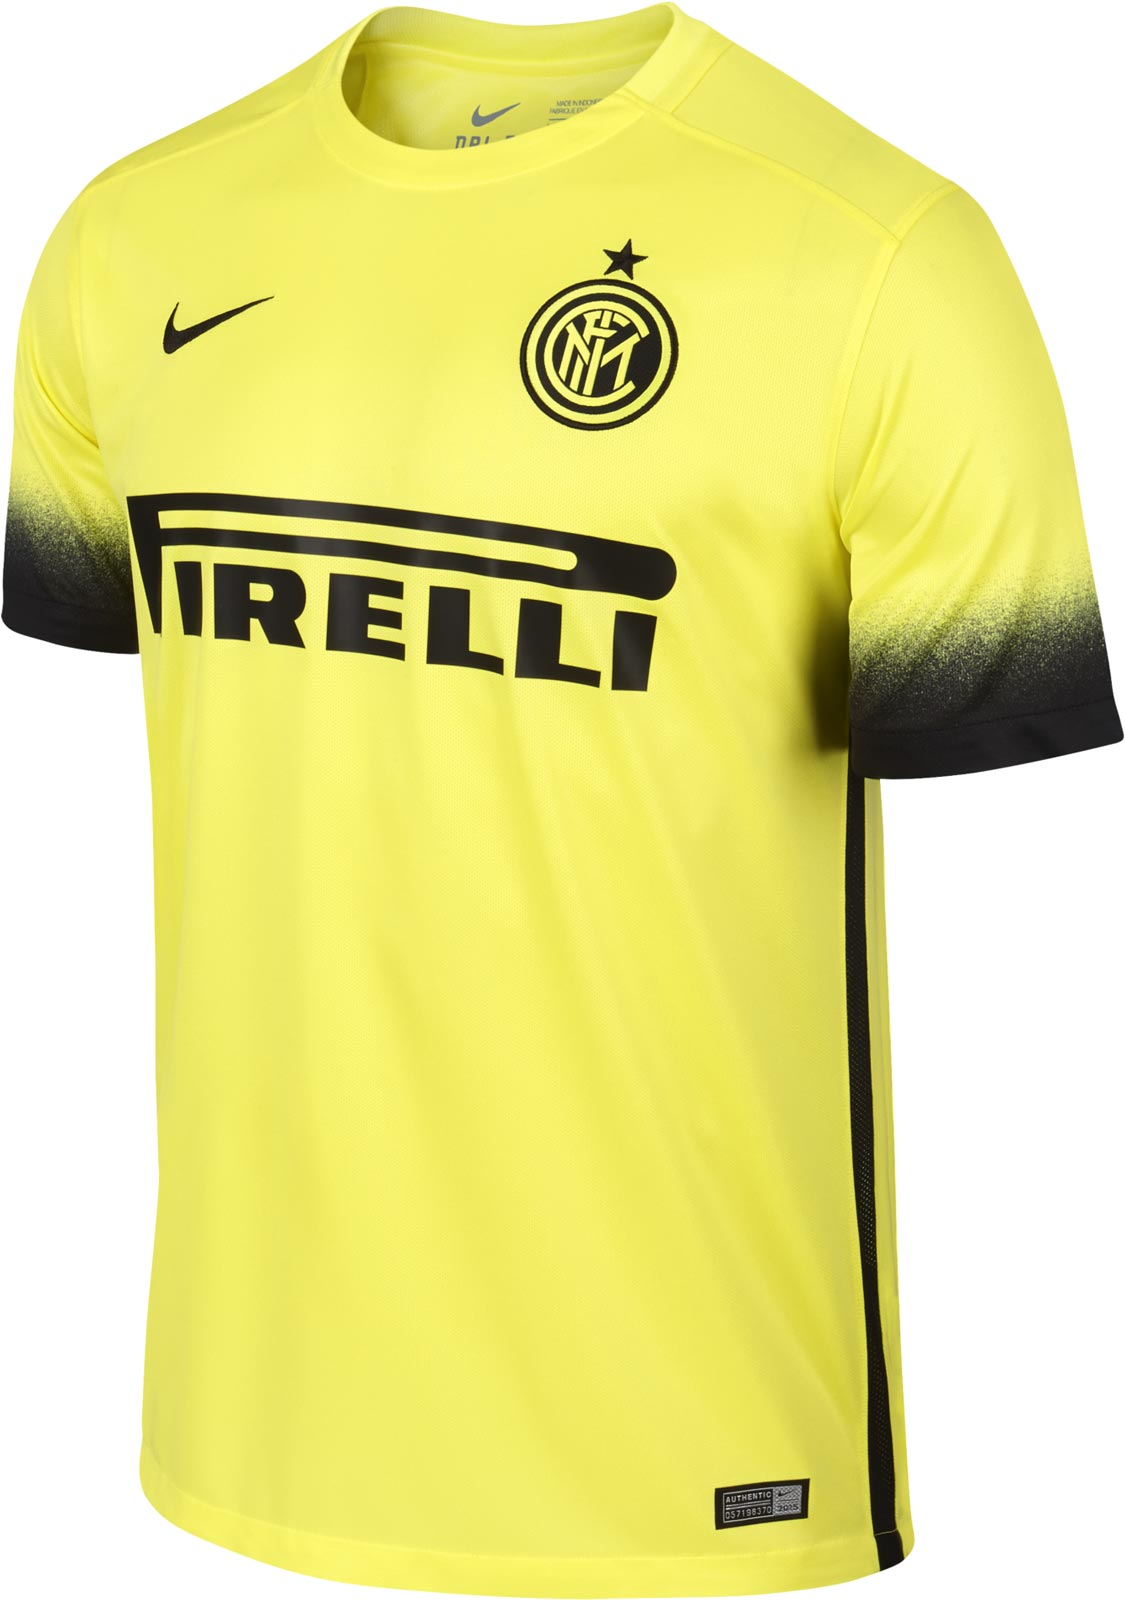 Boys 2015/16 Inter Milan Night Rising Stadium Light Voltage Yellow Ii/Black/Light Voltage Yellow Ii